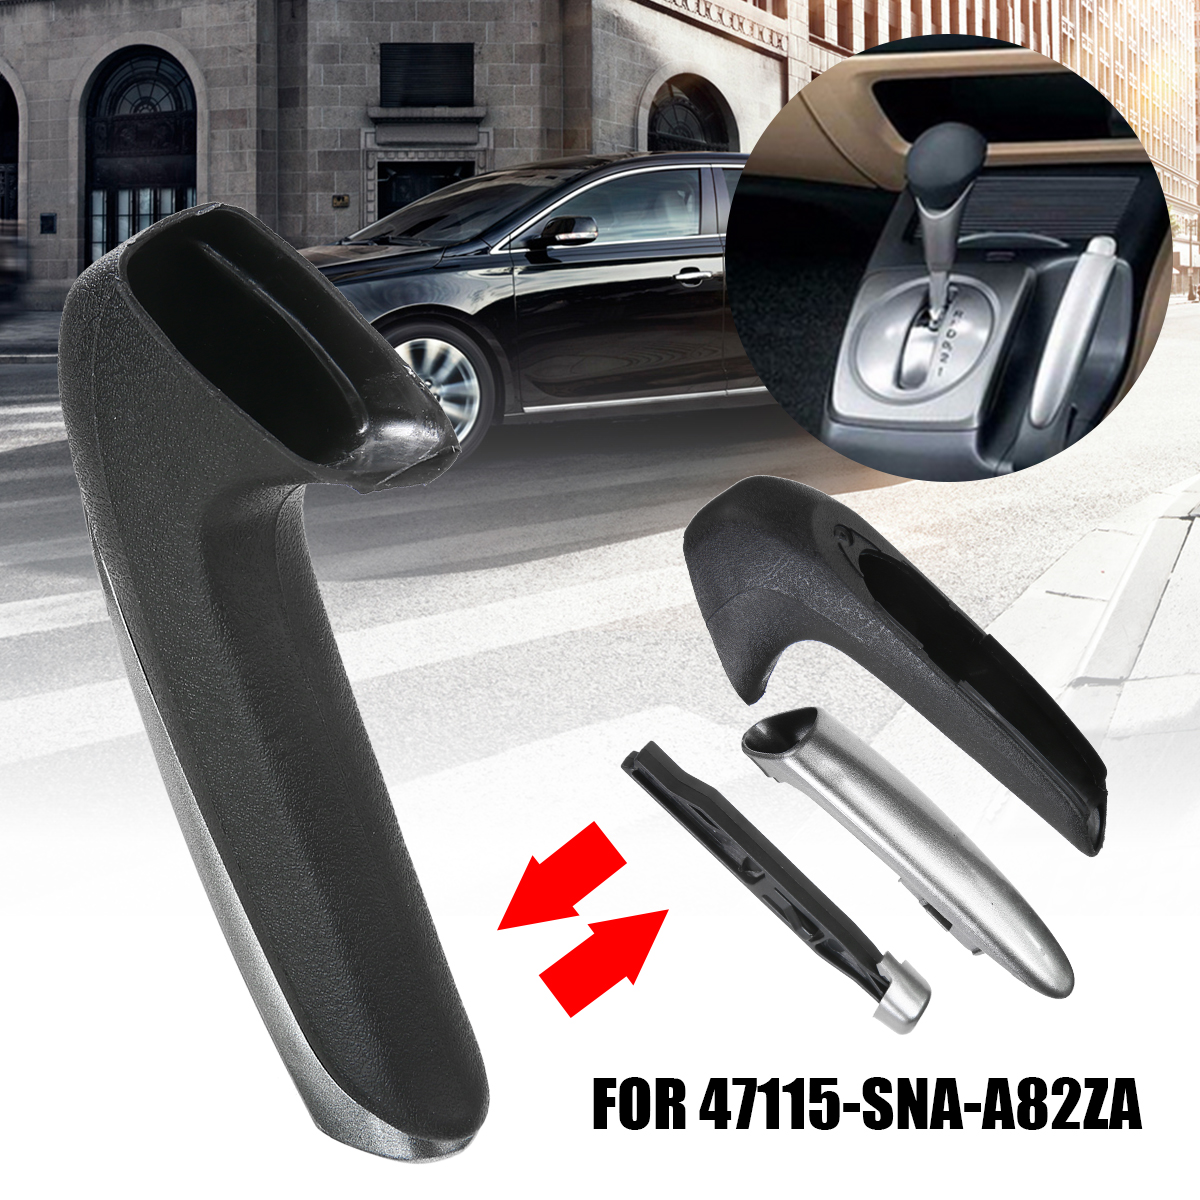 Mayitr 1pc Parking Brake Handle Dedicated Replacement Handle Cover For Honda Civic 06-11 47115-SNA-A82ZA/47125-SNA-A82ZB